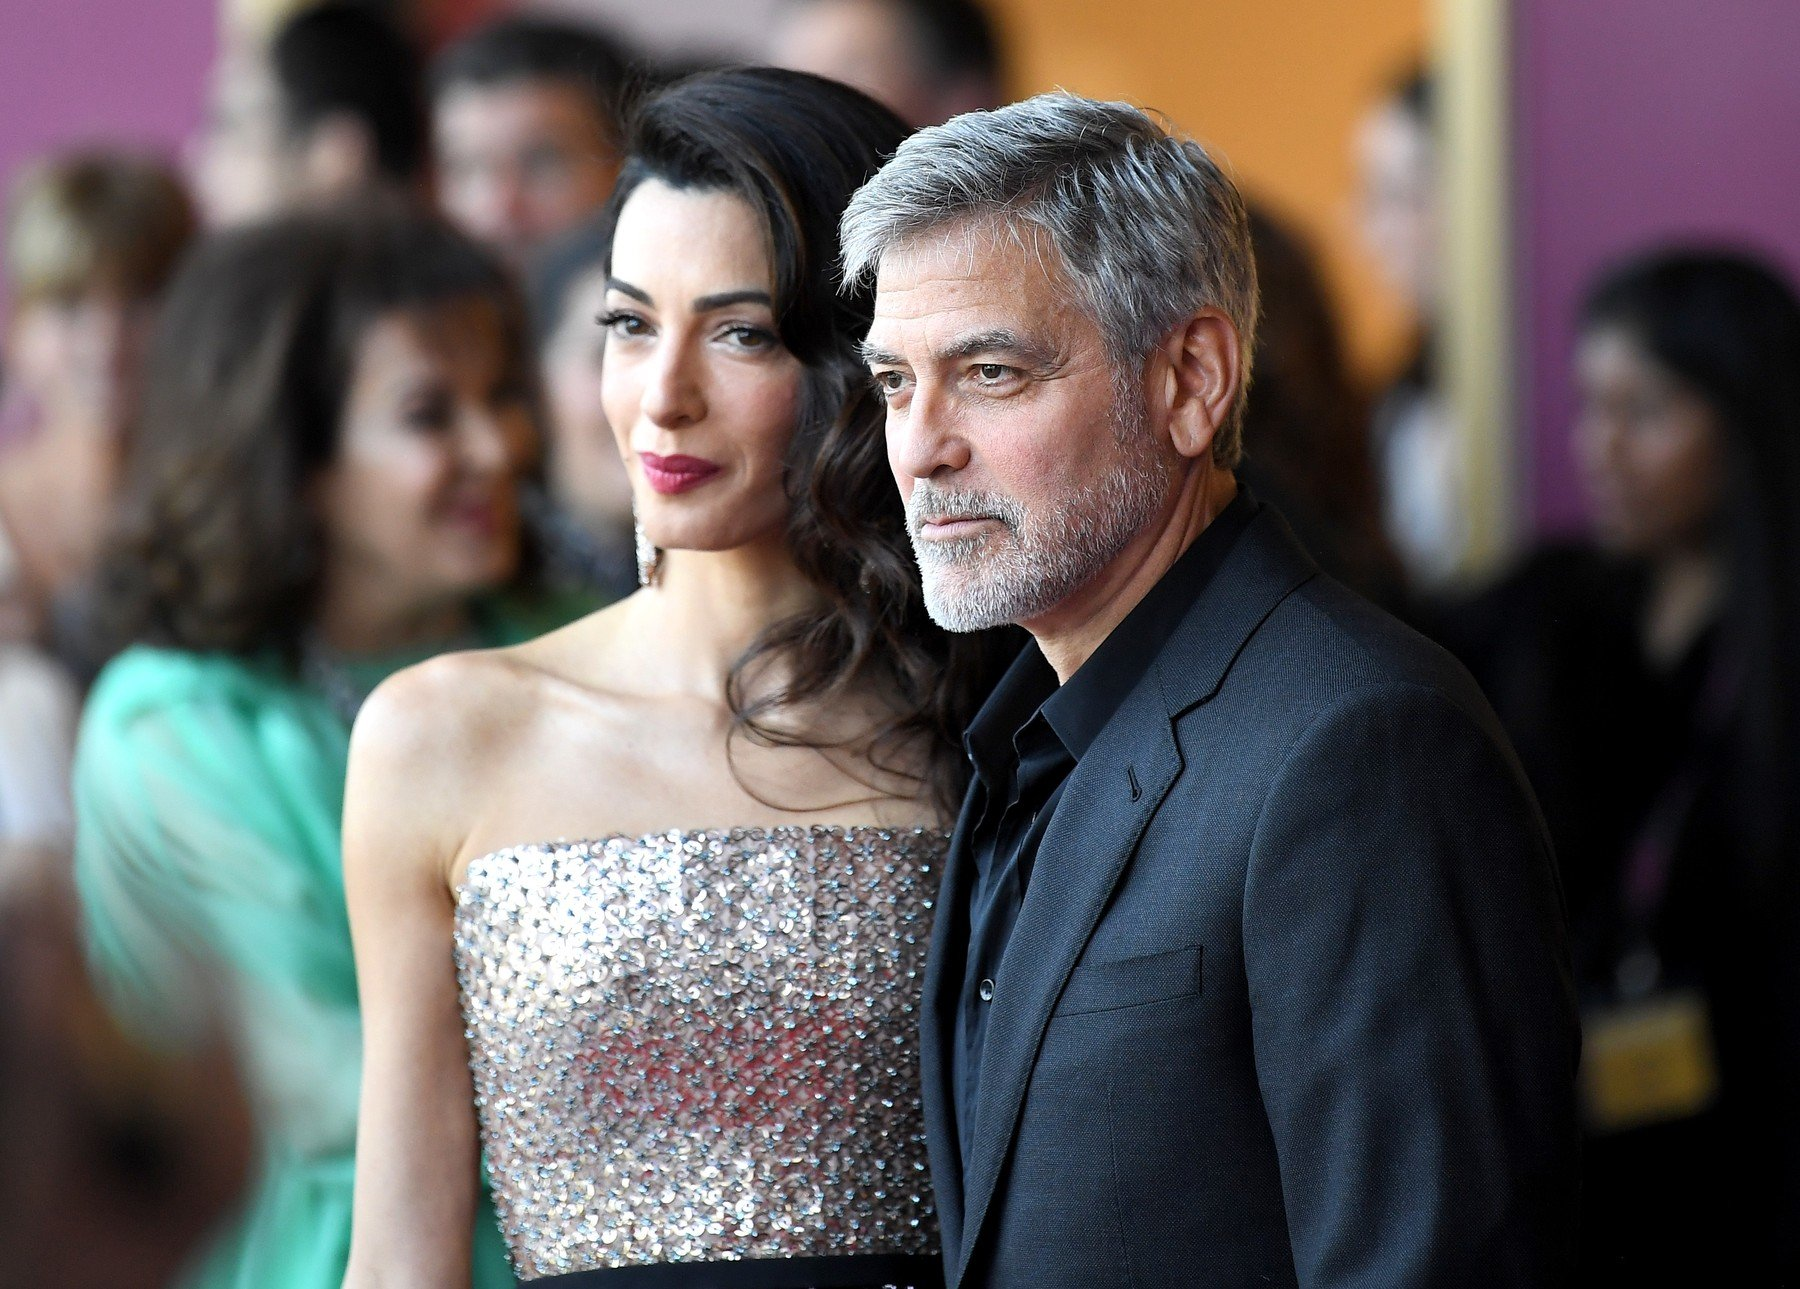 Amal Clooney and George Clooney 'Catch-22' TV show premiere, London, UK - 15 May 2019, Image: 433476038, License: Rights-managed, Restrictions: , Model Release: no, Credit line: Profimedia, TEMP Rex Features